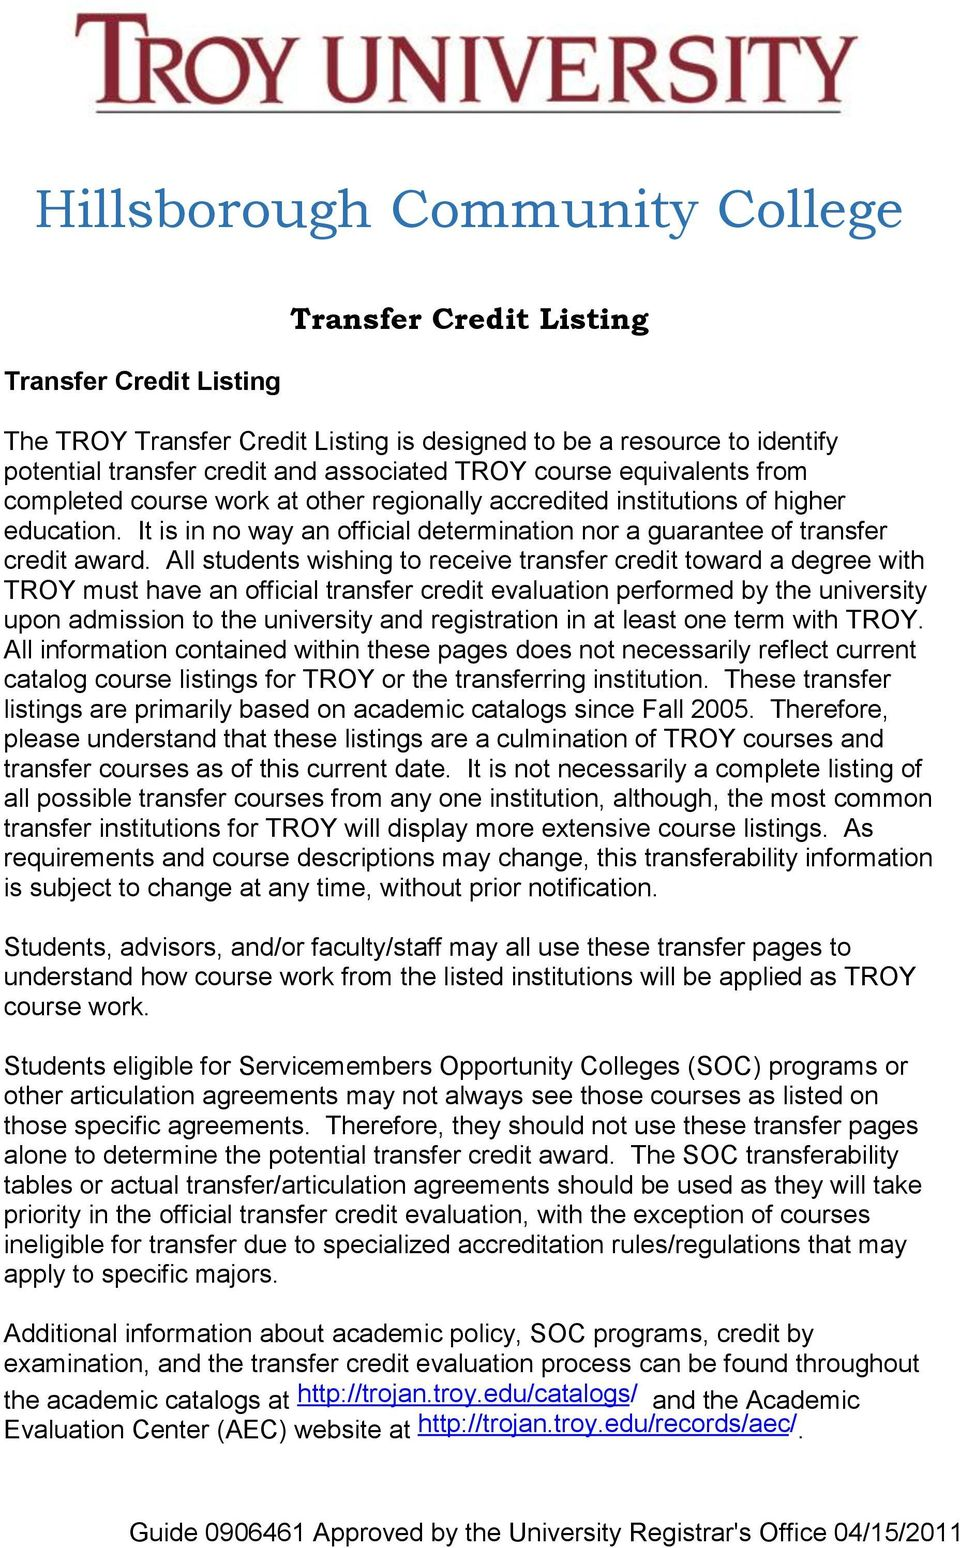 All students wishing to receive transfer credit toward a degree with must have an official transfer credit evaluation performed by the university upon admission to the university and registration in